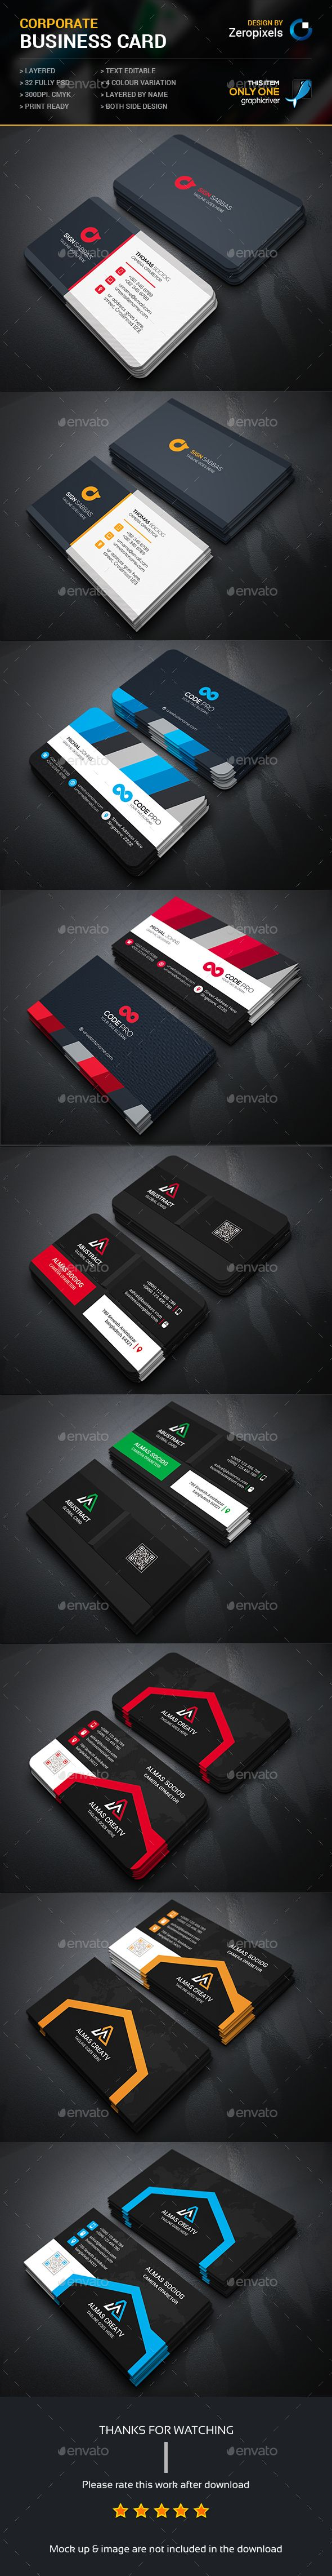 Business Card Template PSD Bundle. Download here: http://graphicriver.net/item/business-card-bundle/15773718?ref=ksioks